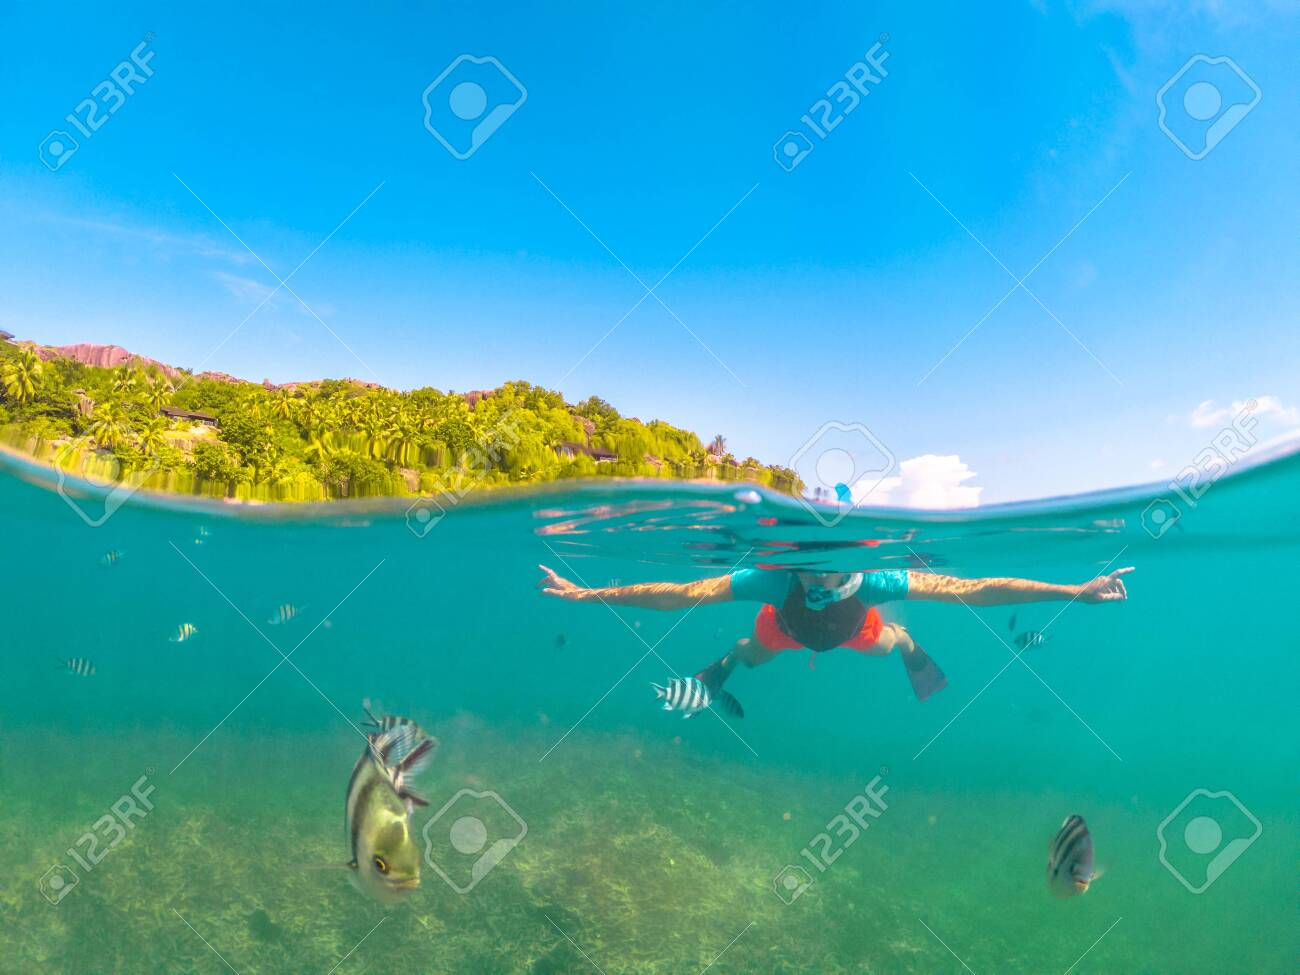 Split view of female apnea under and above the sea. Snorkeling dress woman at Felicite, La Digue satellite island, Seychelles. Travel lifestyle watersport activity. Fish and sealife in foreground. - 123848681